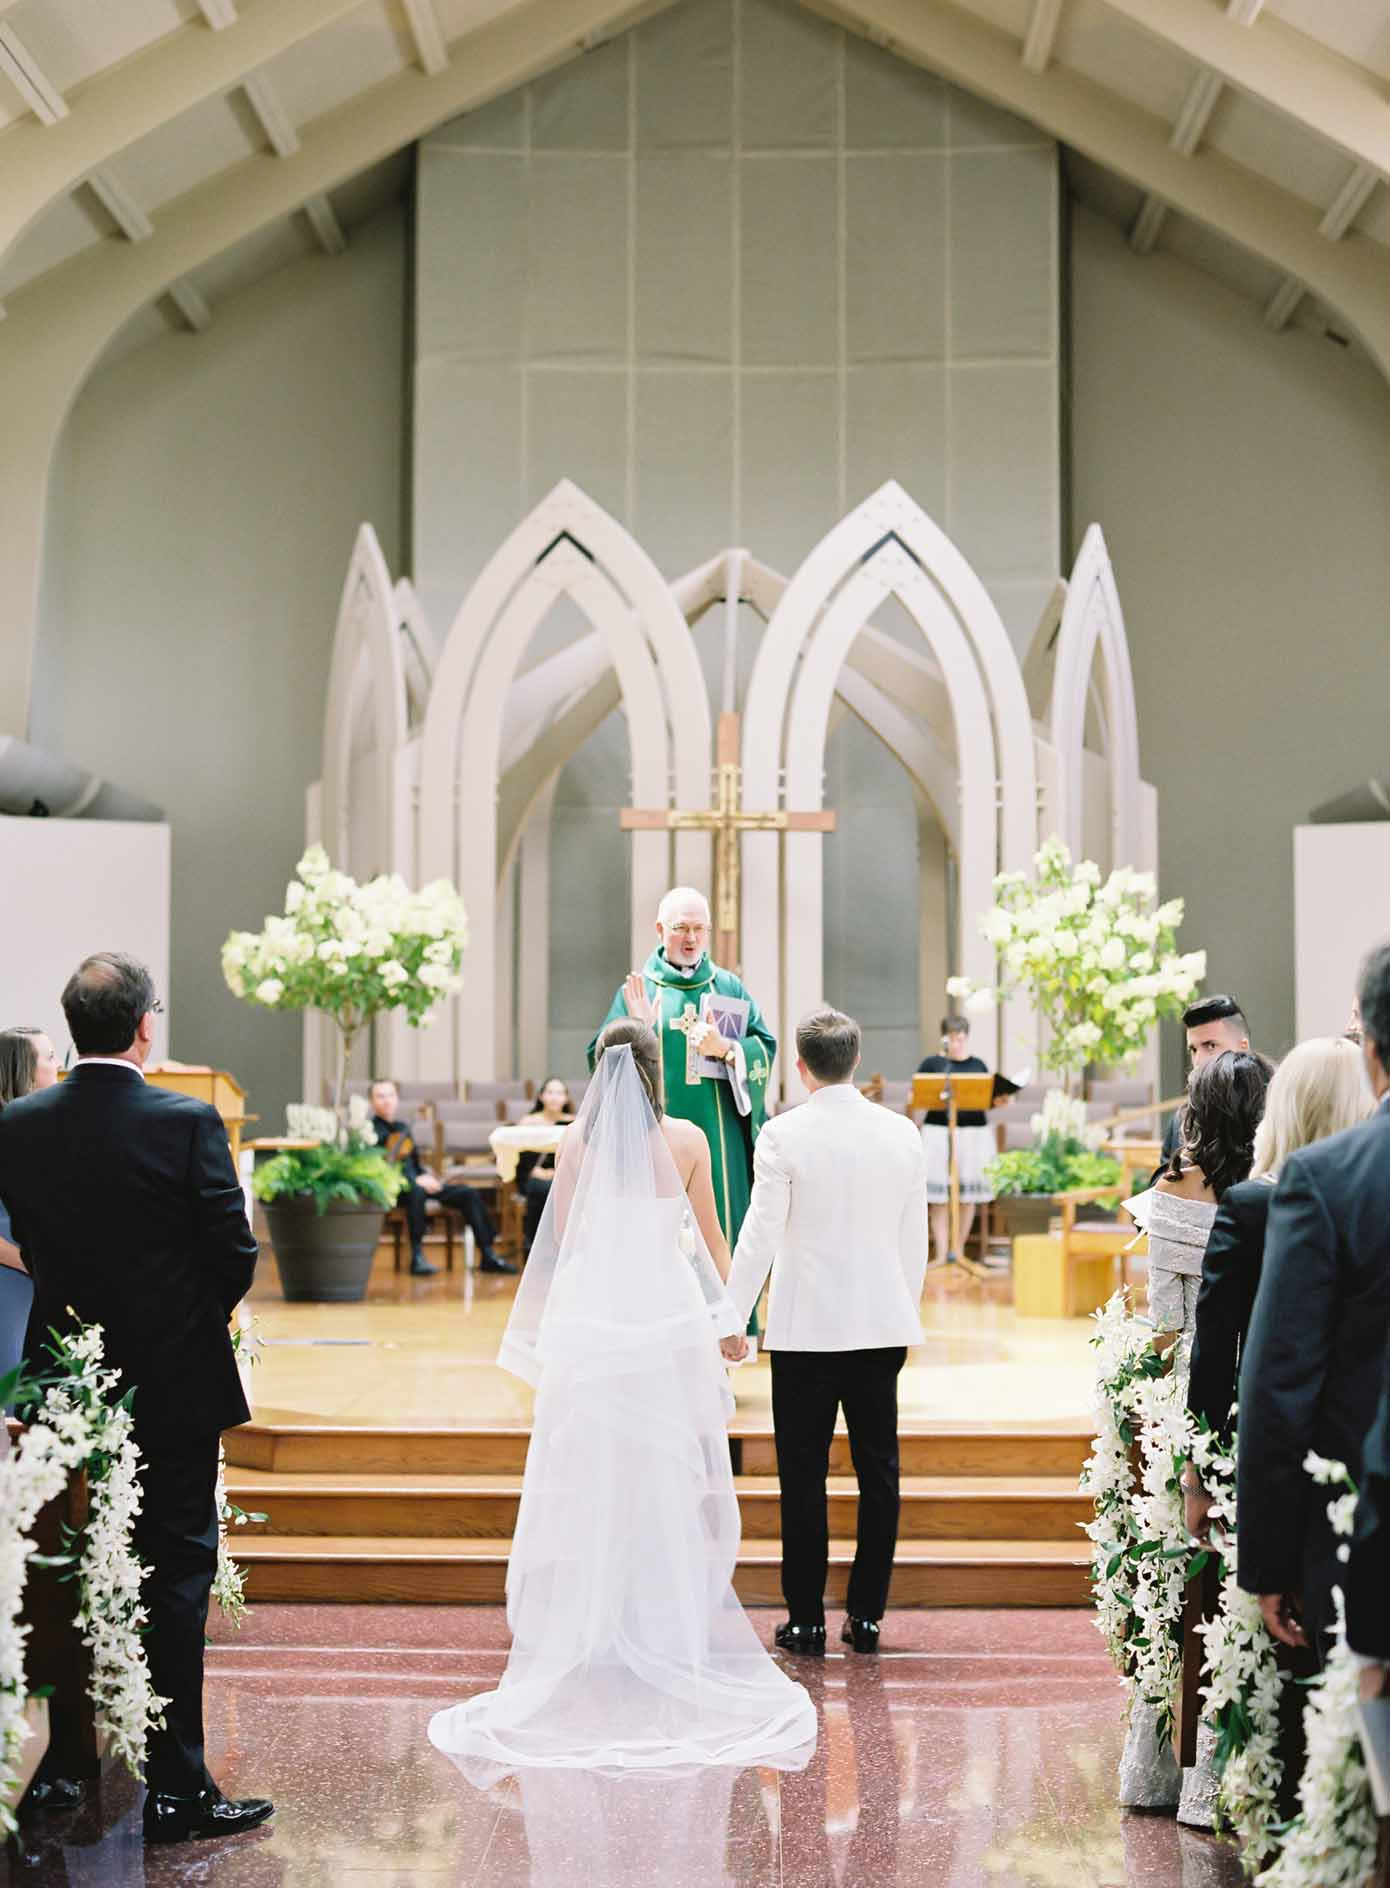 Wedding couple in front of church altar and white and green wedding